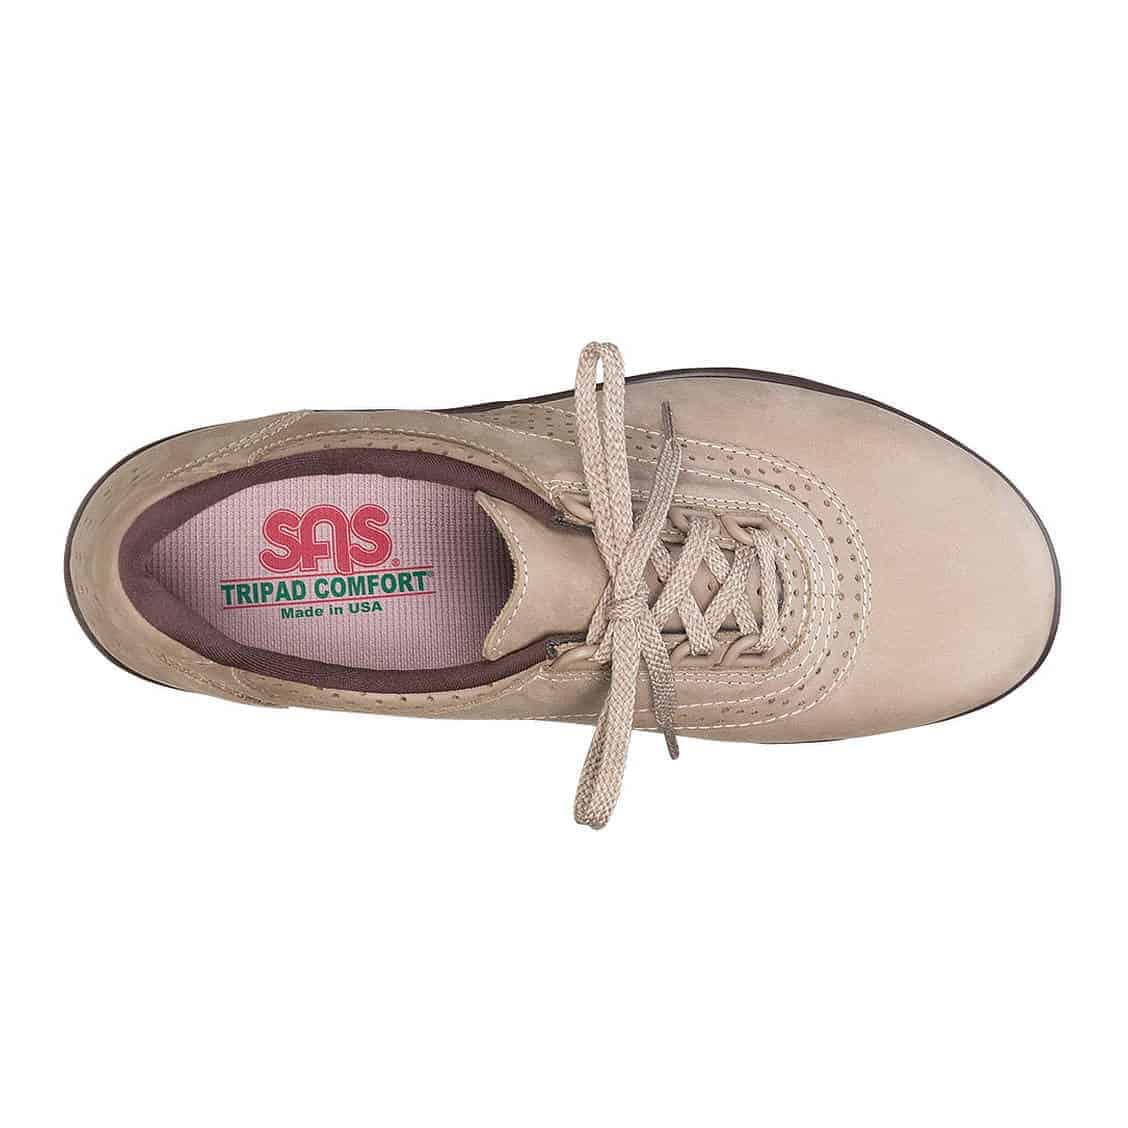 sas-womens-walk-easy-sage-nubuck-2380-228-4